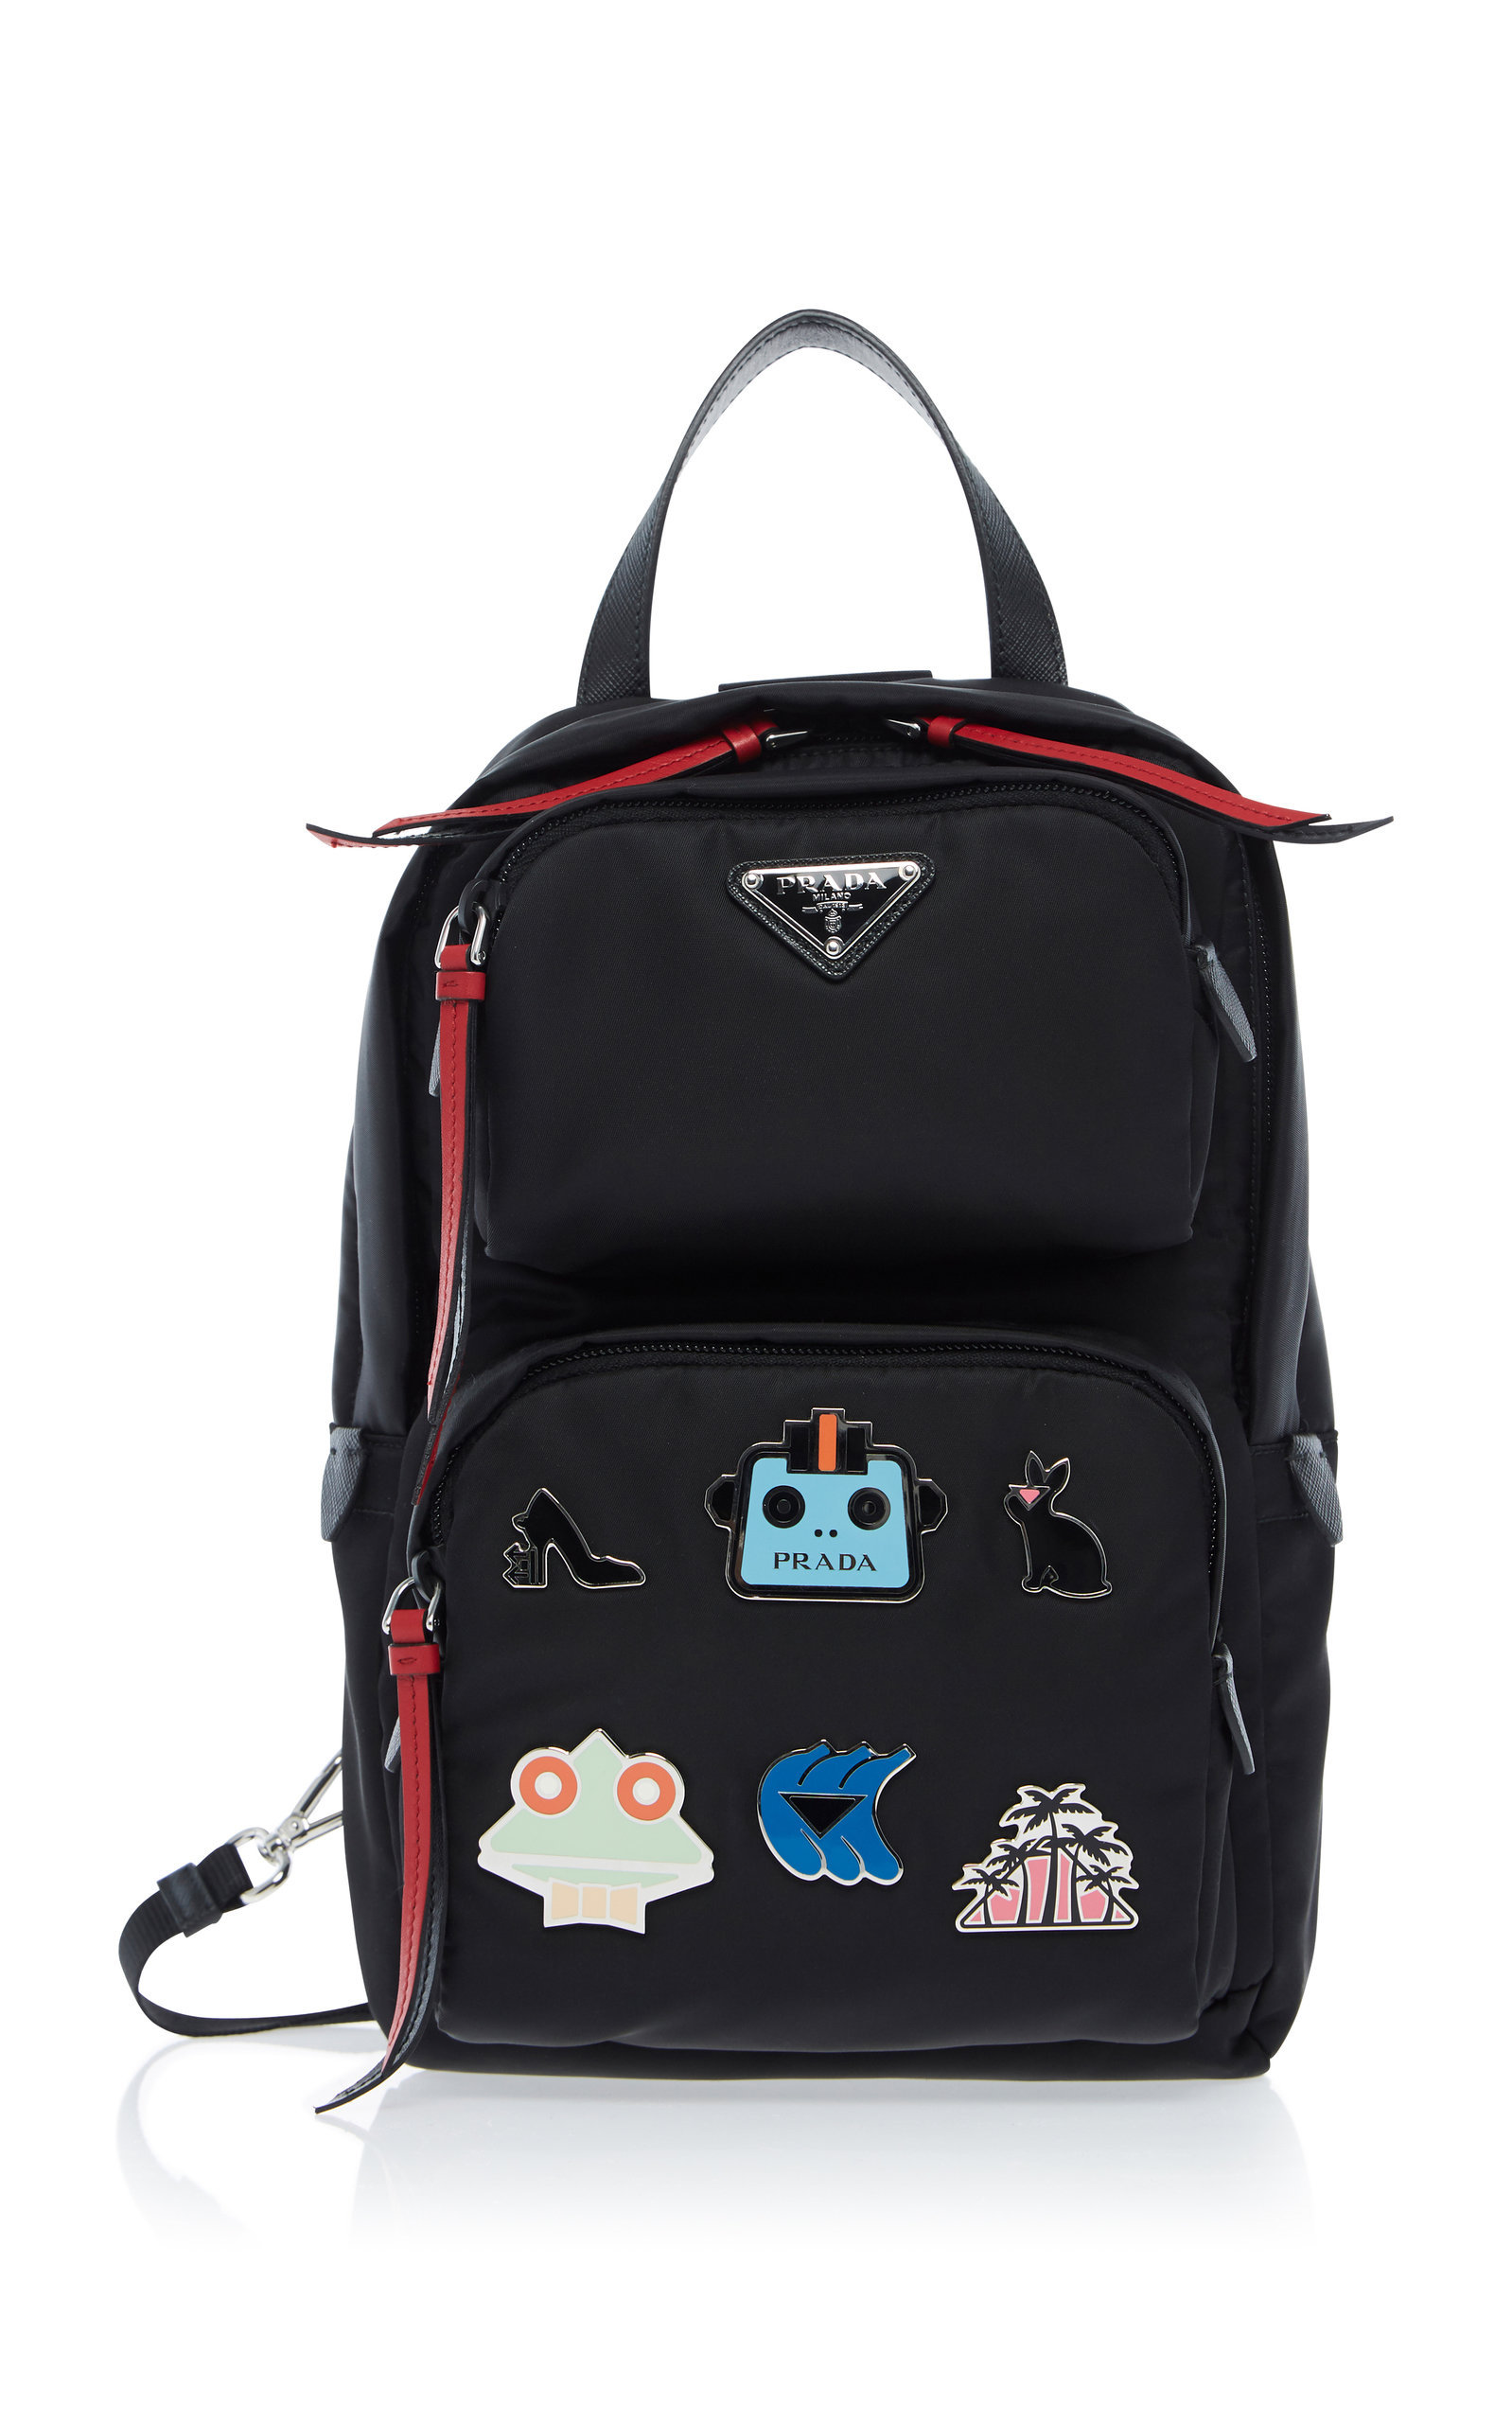 6cd56008243e Best Mini Backpack Brands- Fenix Toulouse Handball